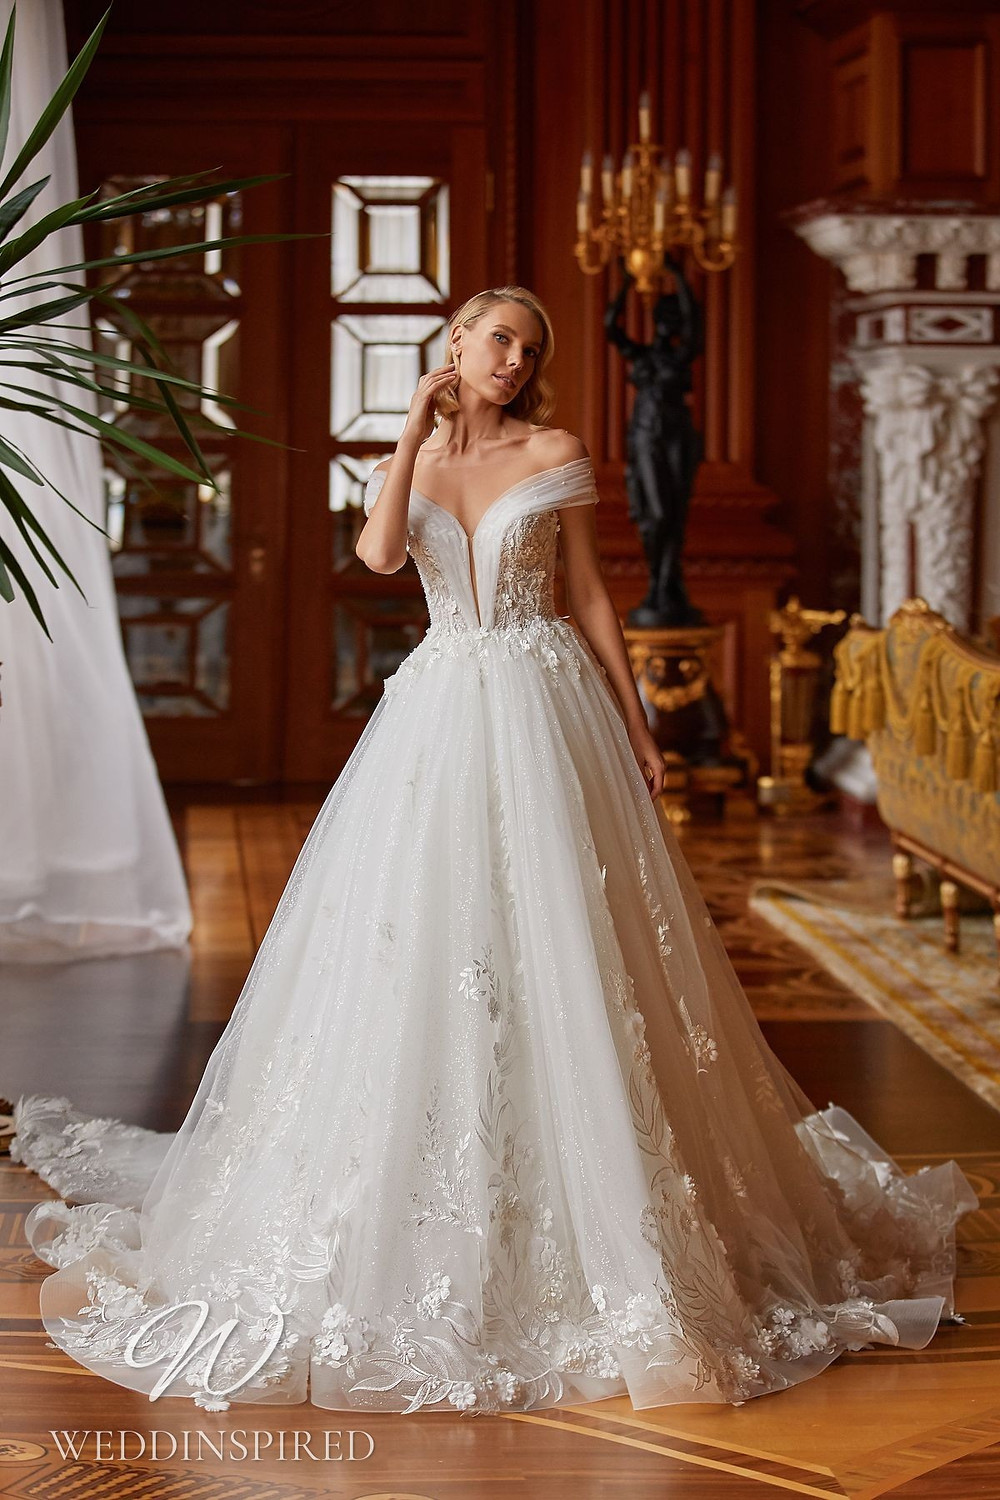 A Pollardi 2021 off the shoulder lace and tulle princess wedding dress